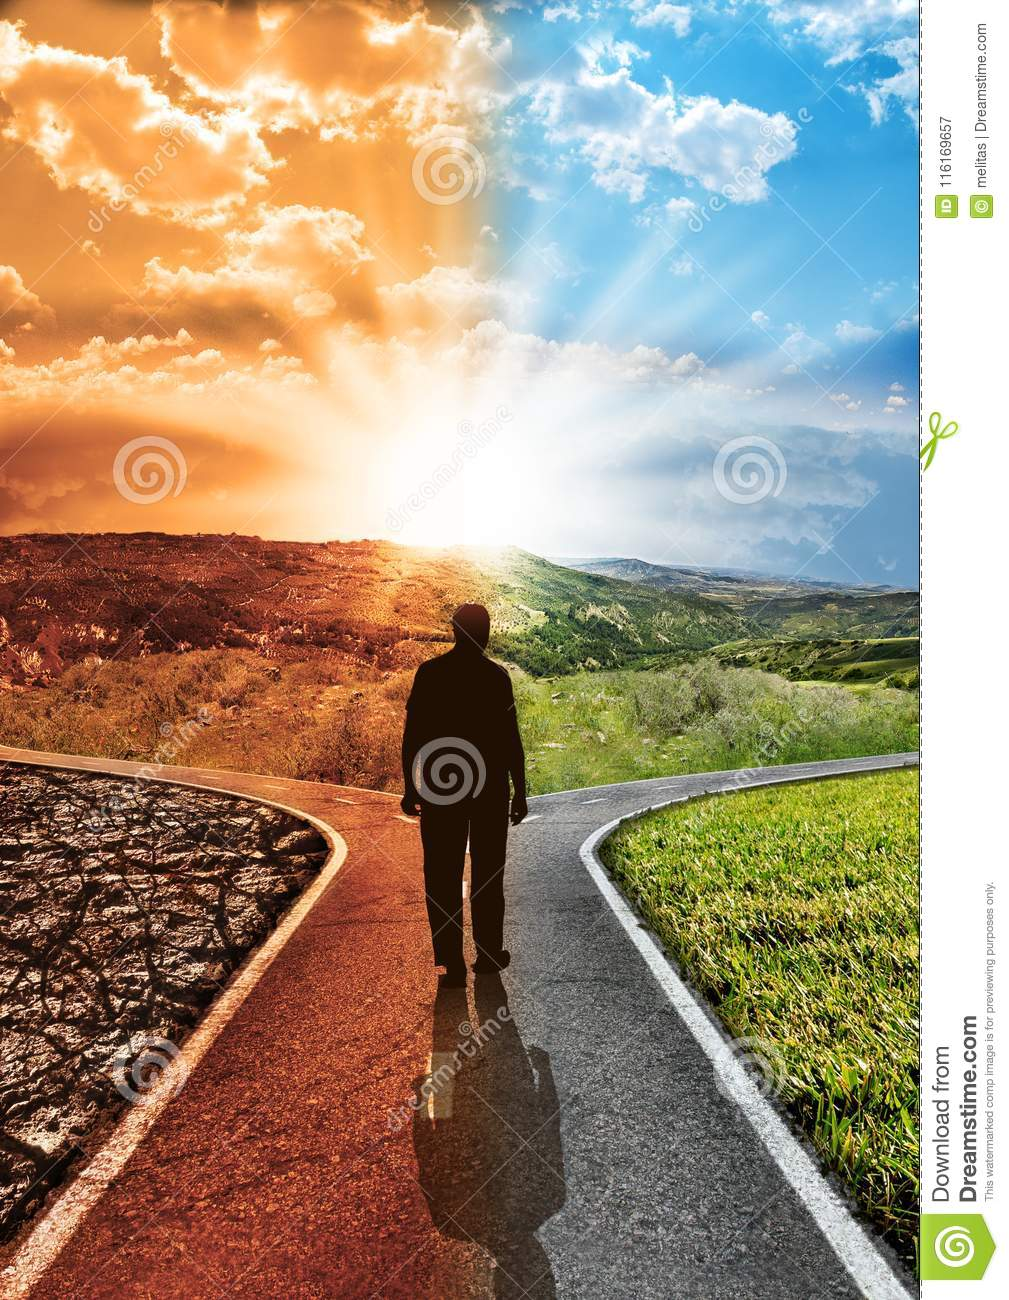 Concept responsibility environmental impact climate change and global warming with silhouette man who chooses walking on a paved j